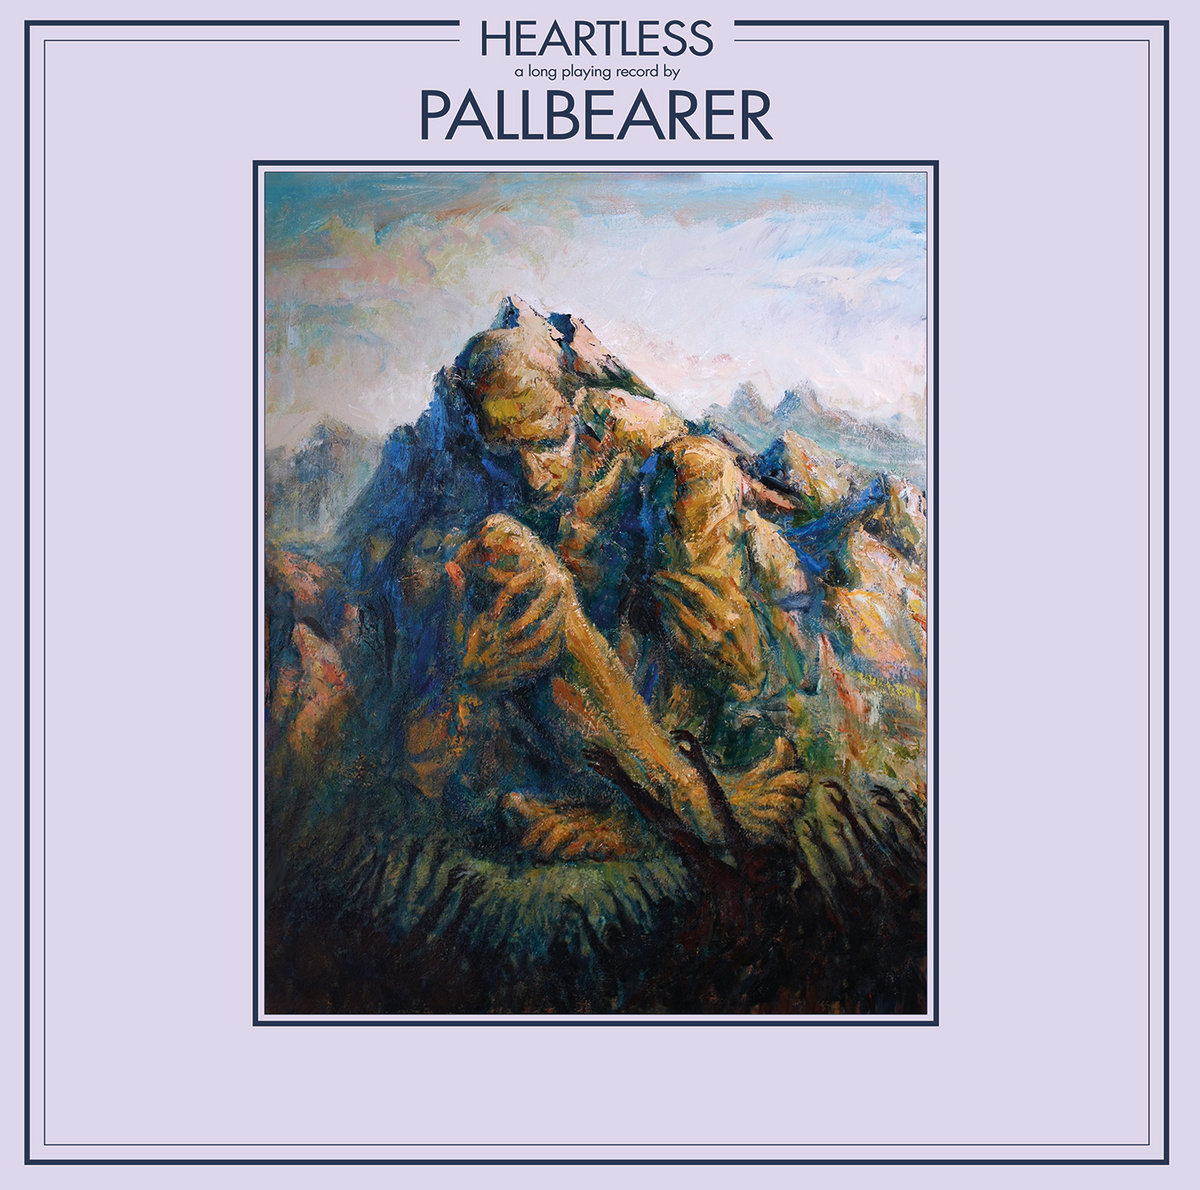 Image result for pallbearer heartless